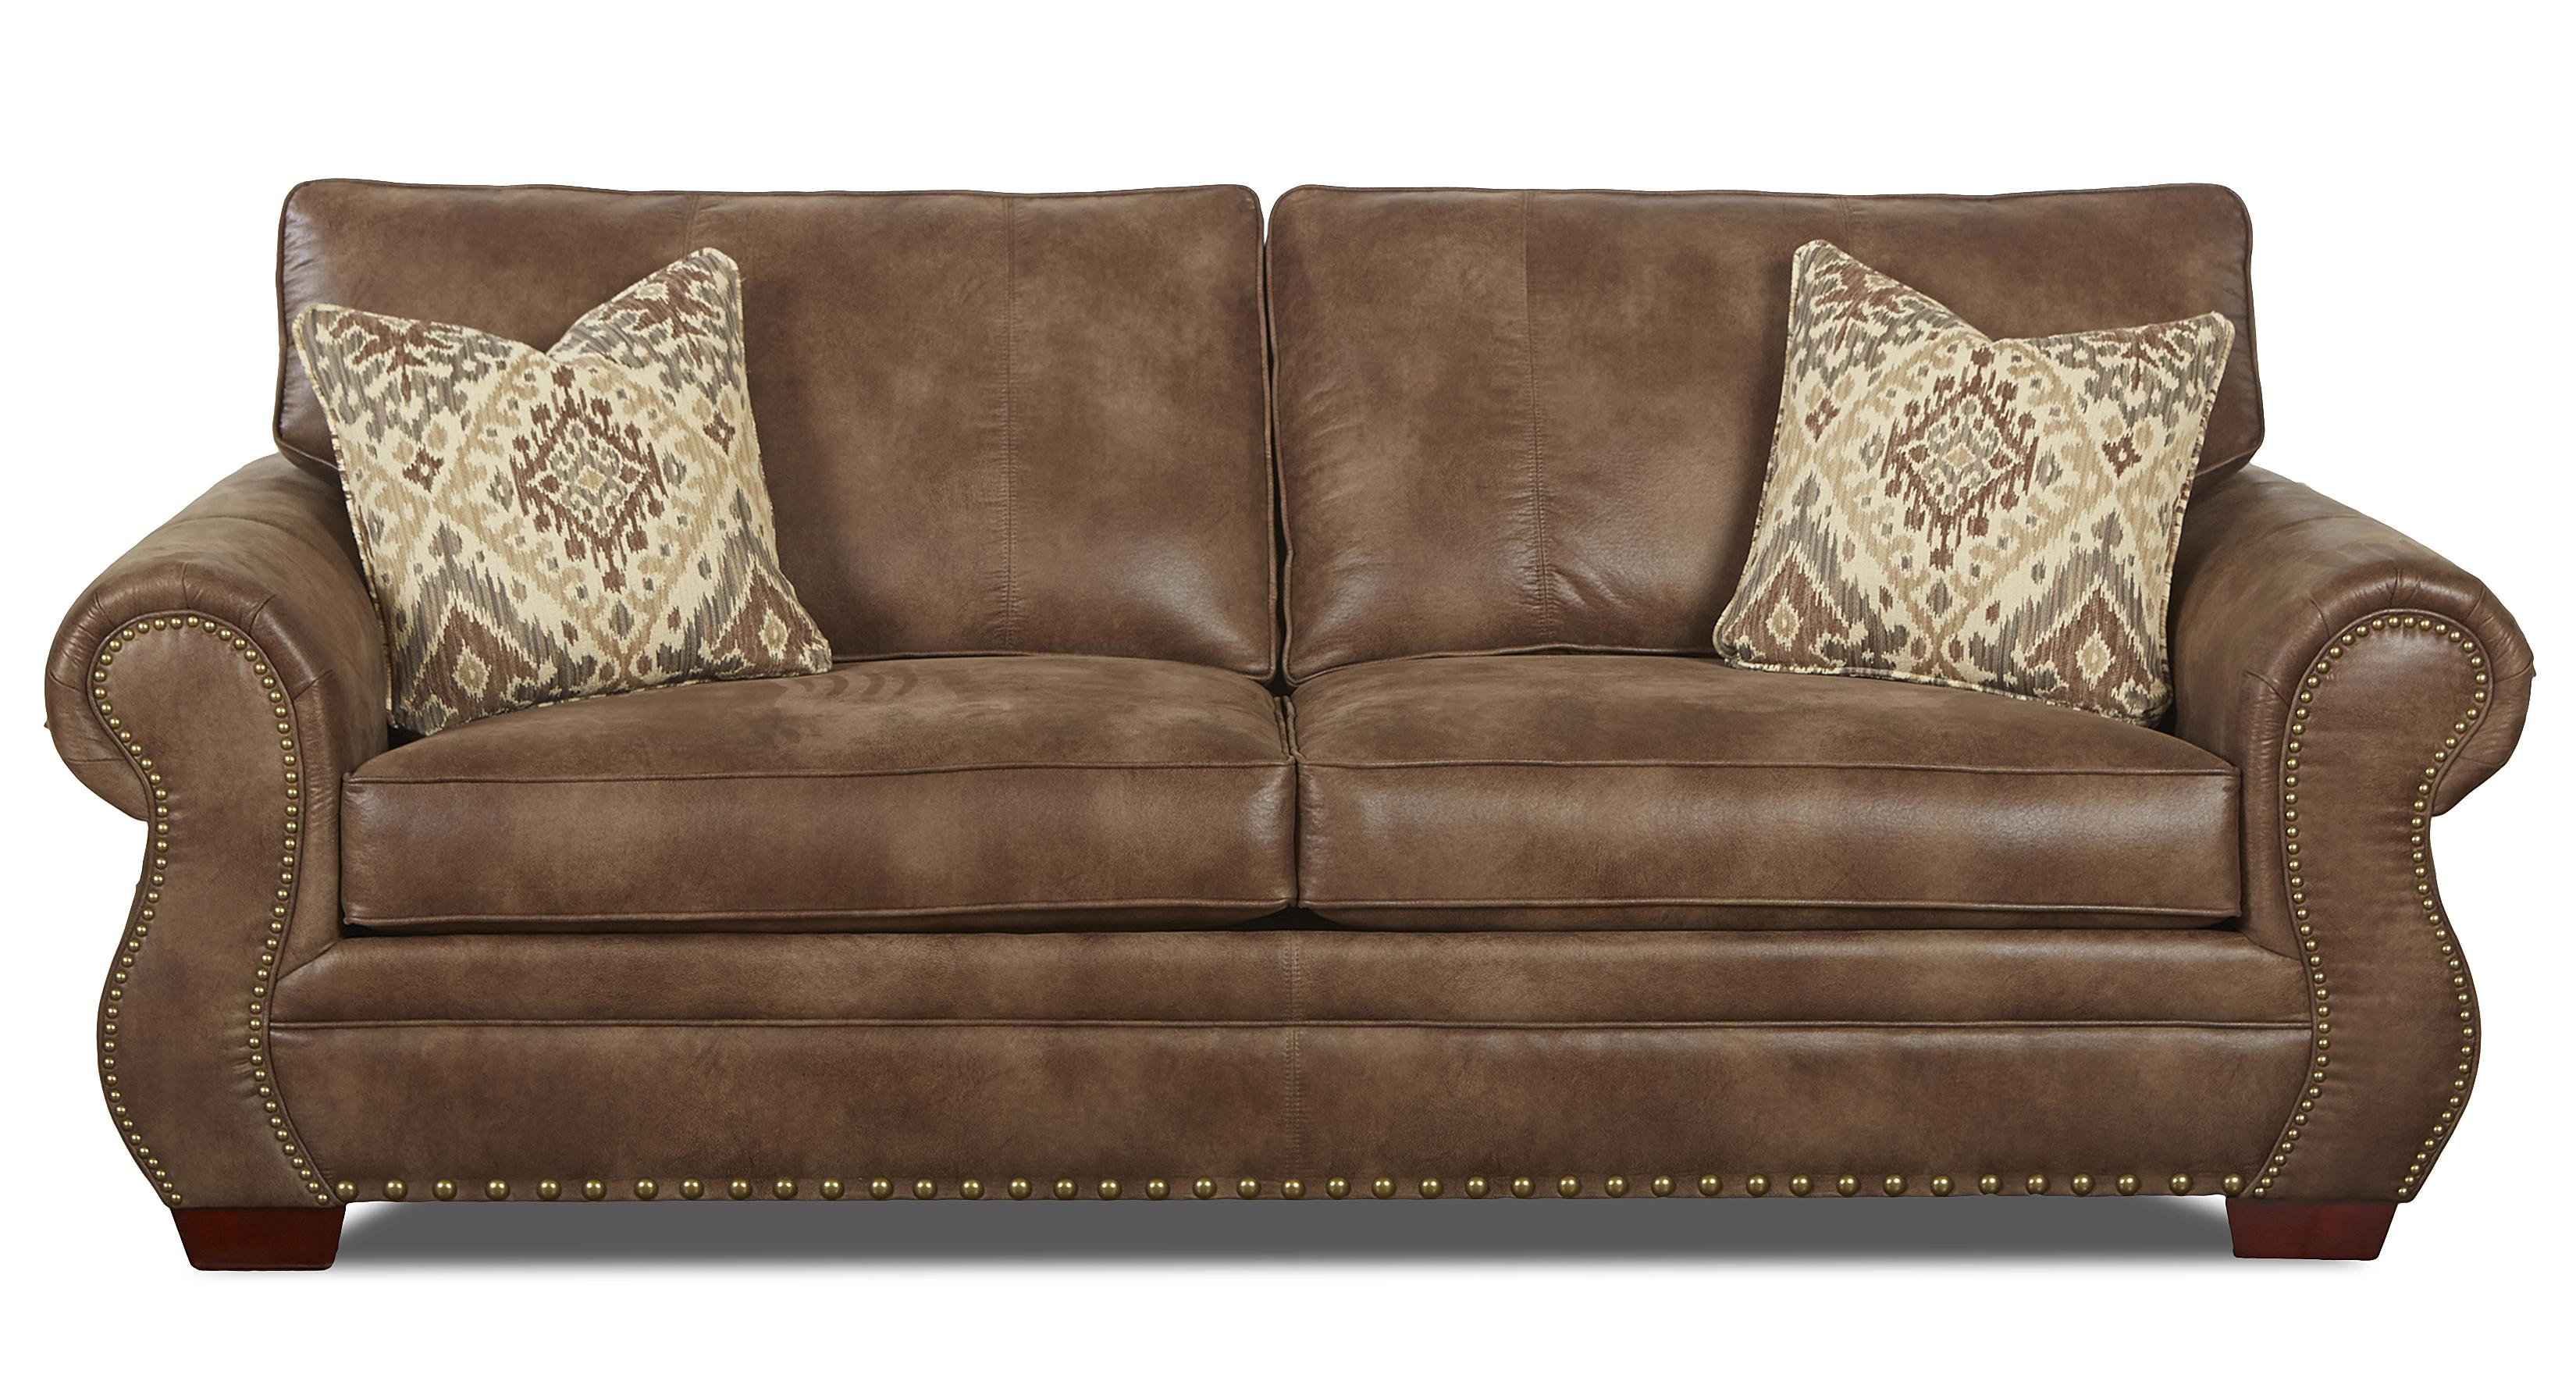 Klaussner Blackburn Traditional Sofa - Item Number: K14310 S-PadreTaupe